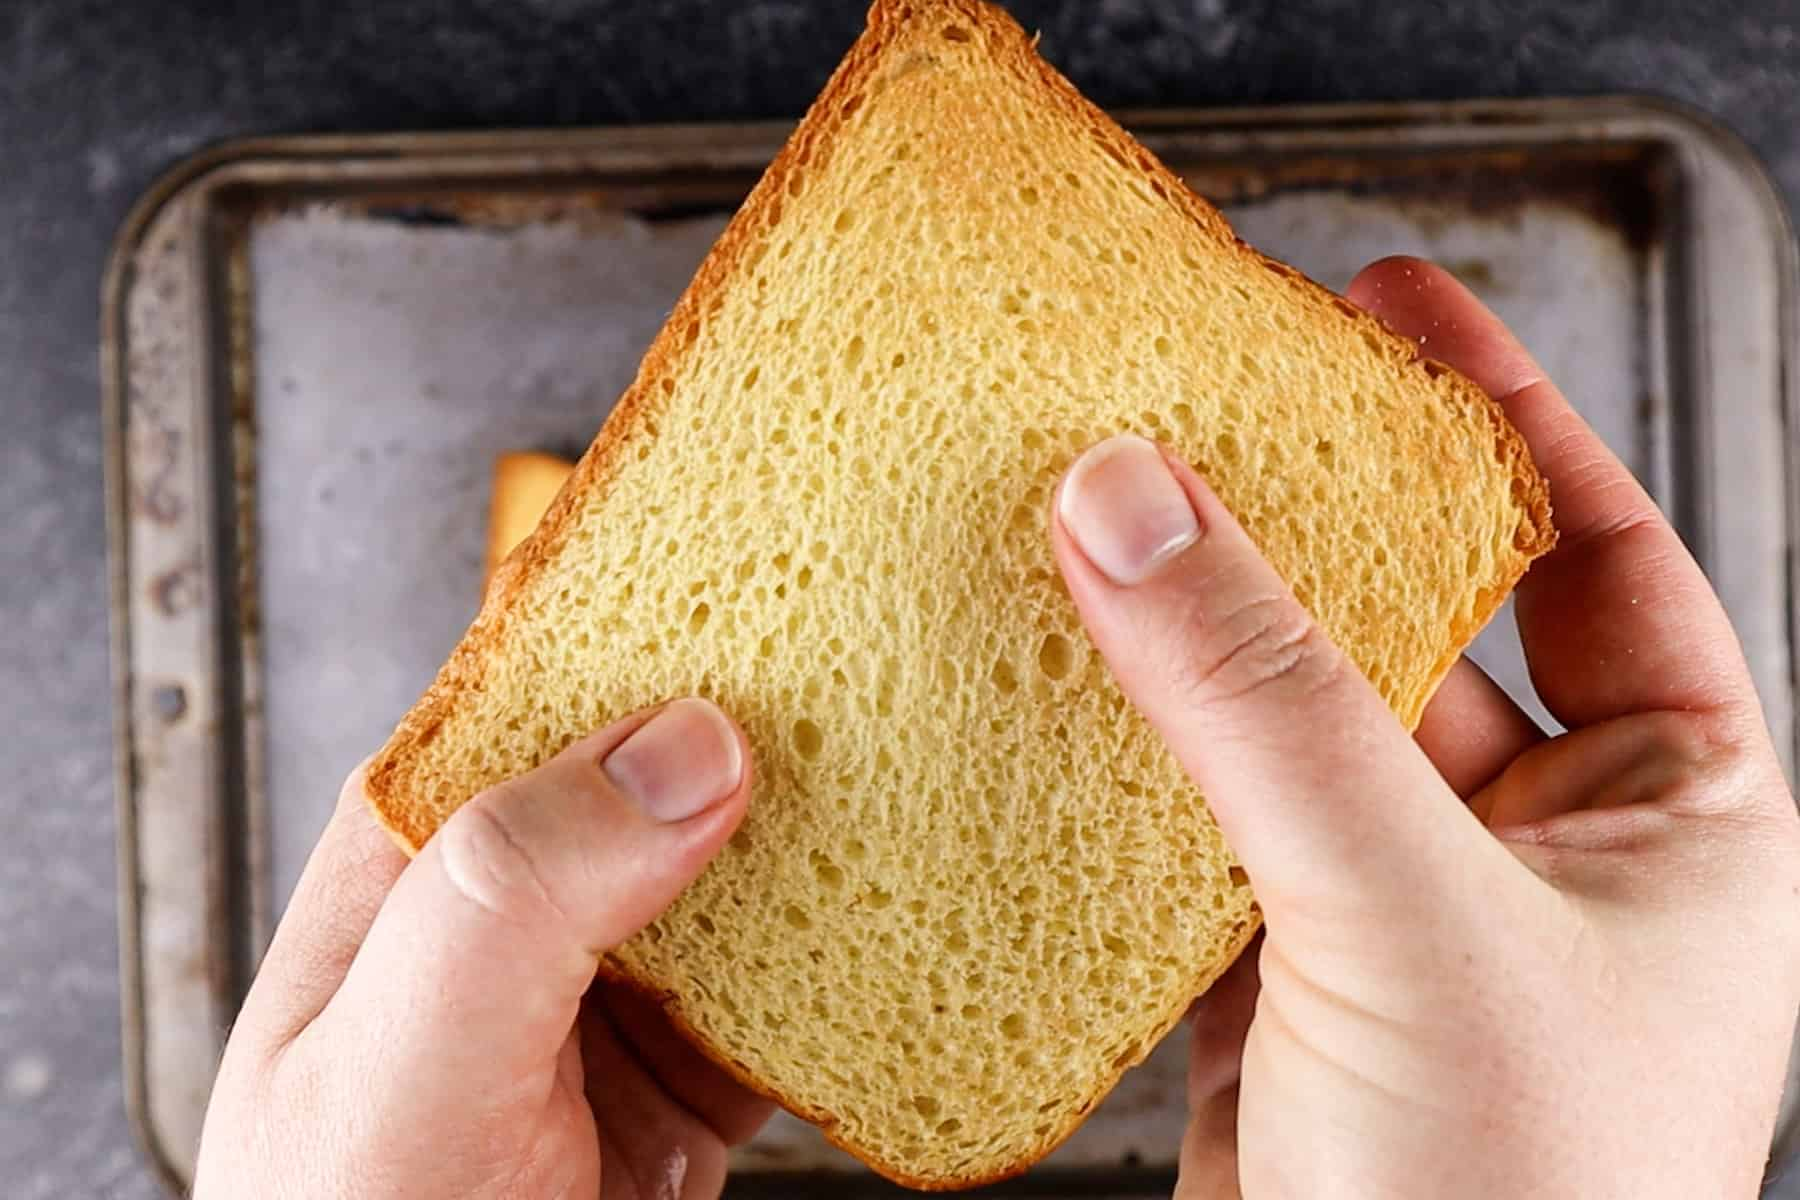 light toasted/ dried out piece of bread